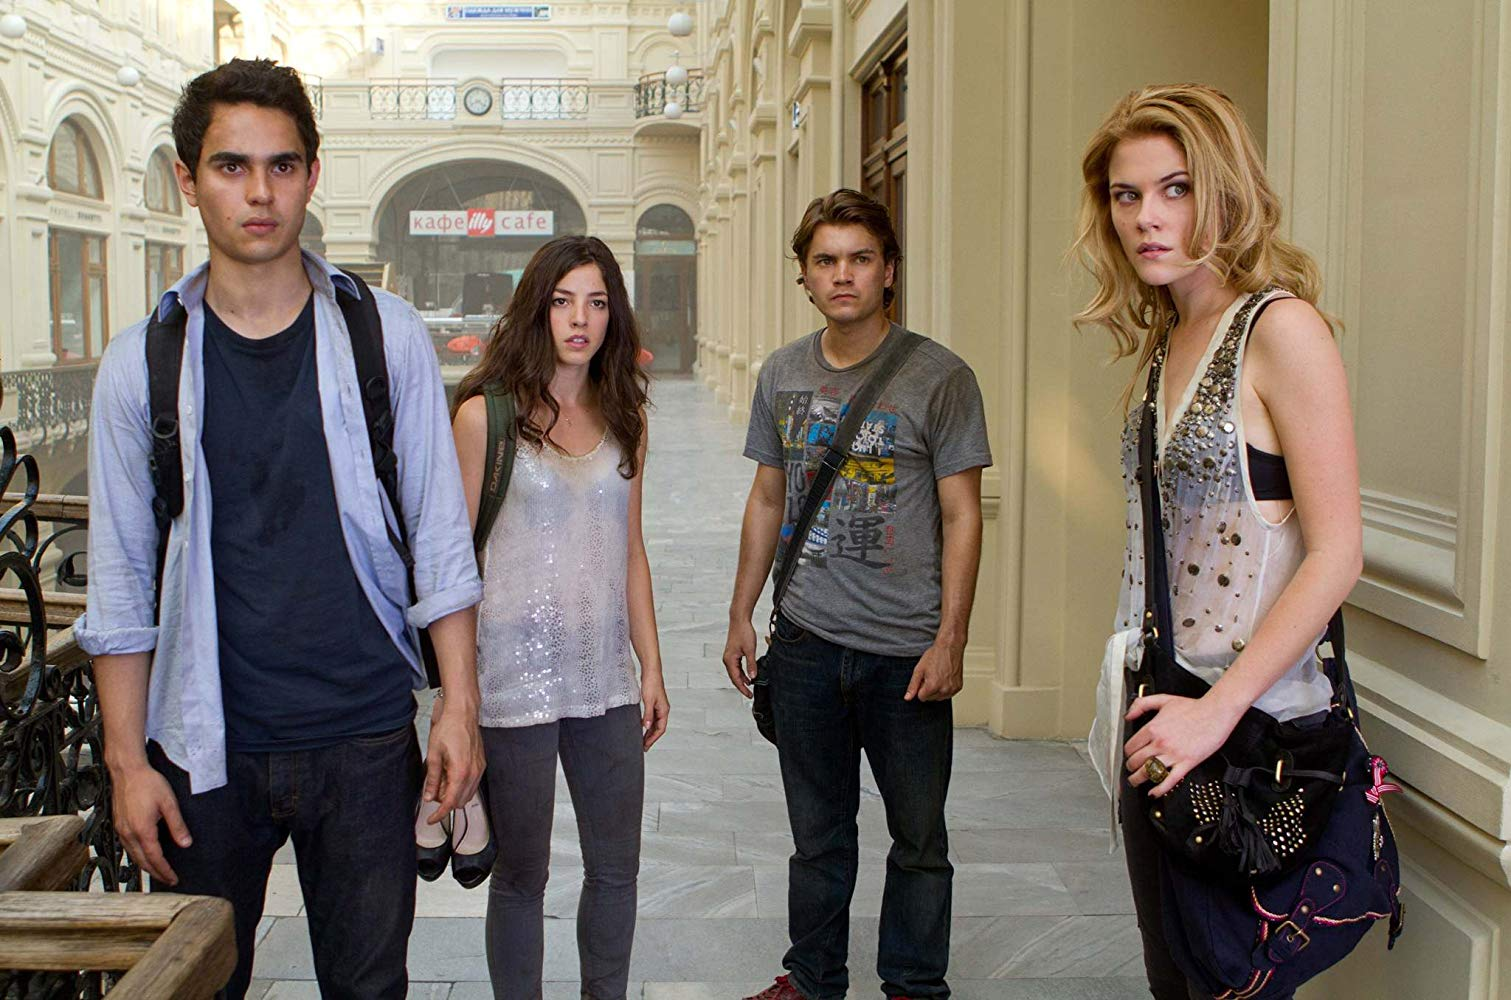 Self-absorbed American twentysomethings in Moscow - (l to r) Max Minghella, Olivia Thirlby, Emile Hirsch and Rachael Taylor in The Darkest Hour (2011)